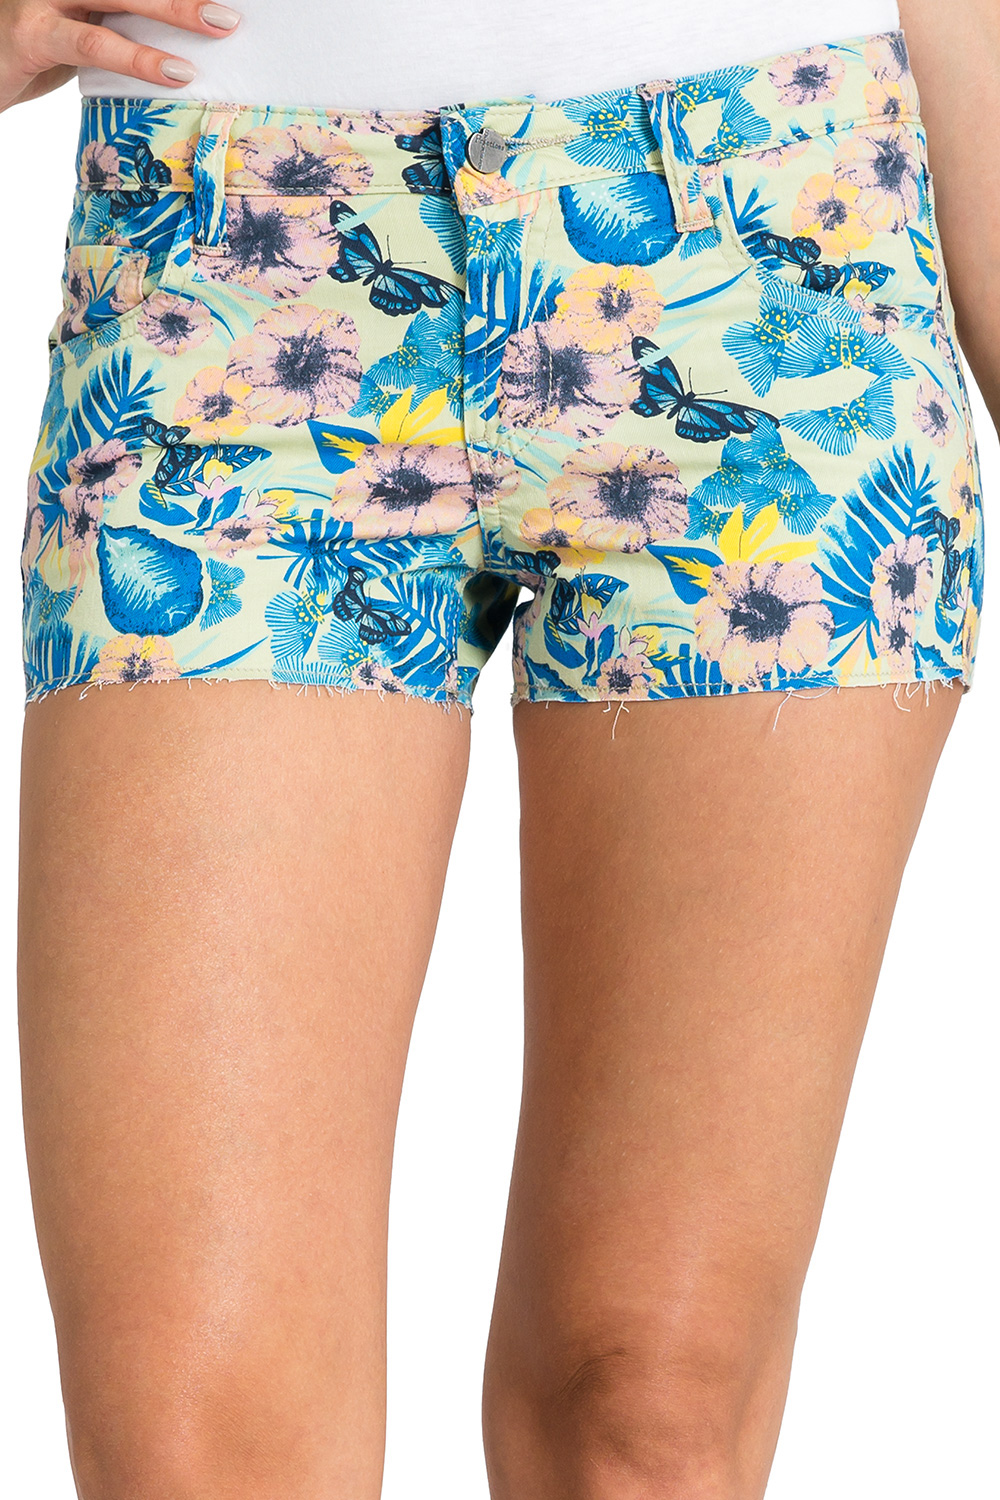 women's multi-colored tropical floral shorts